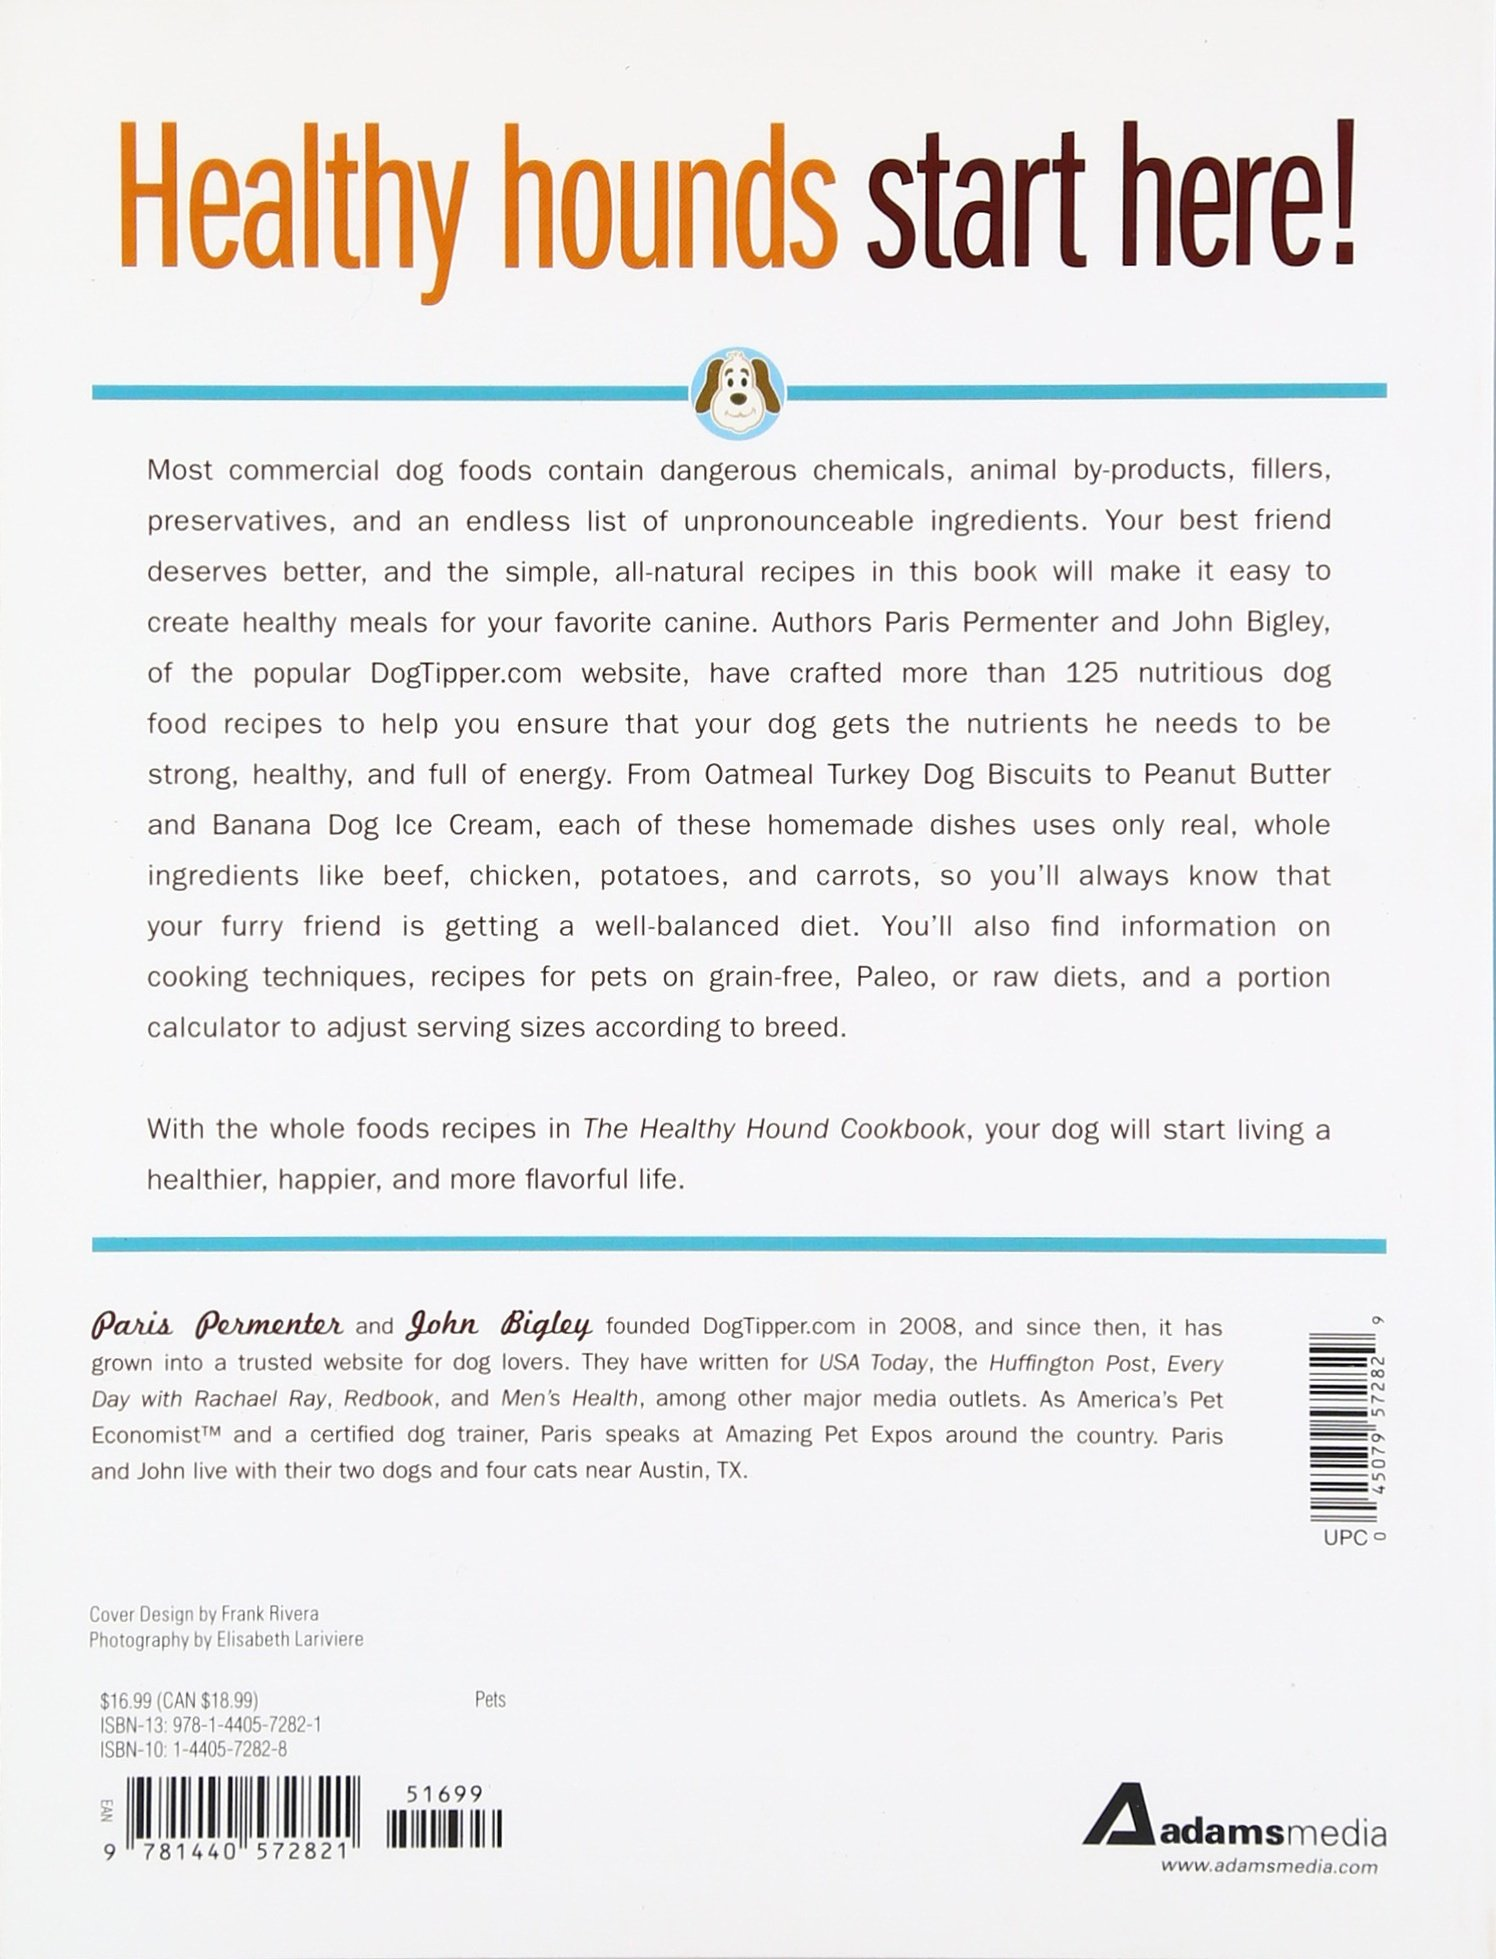 Amazon the healthy hound cookbook over 125 easy recipes for amazon the healthy hound cookbook over 125 easy recipes for healthy homemade dog food including grain free paleo and raw recipes forumfinder Choice Image